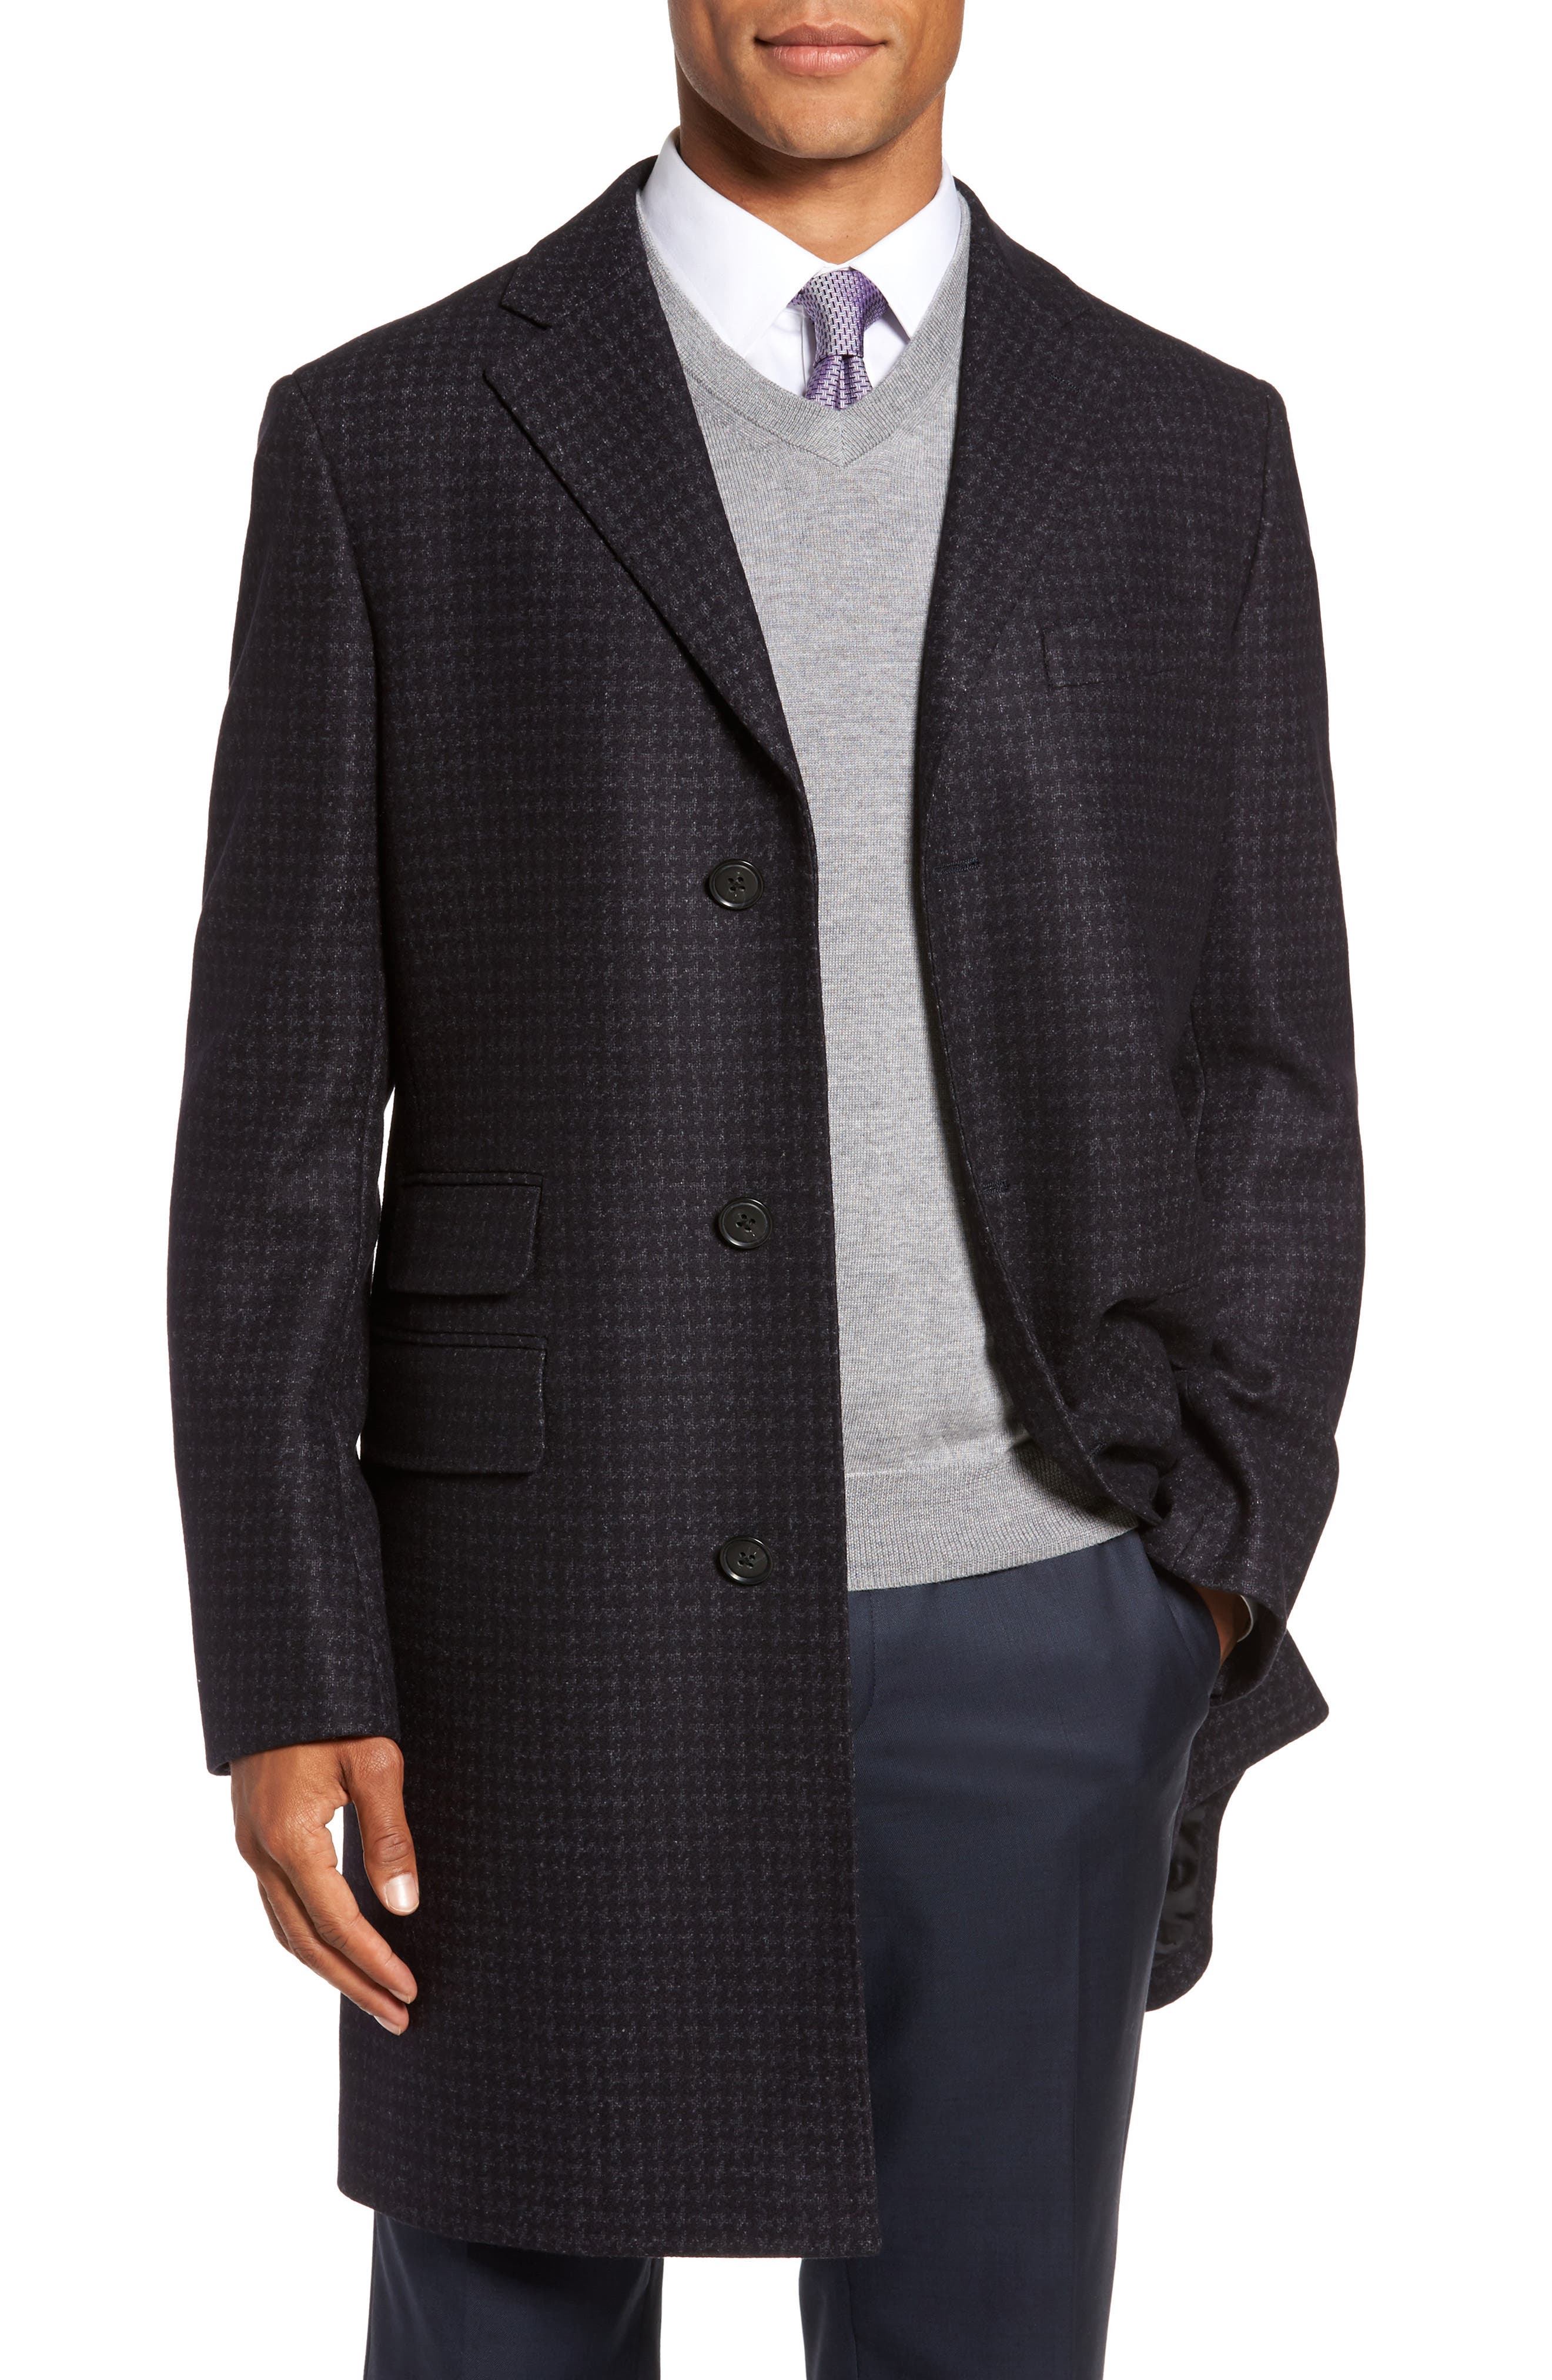 Jackson Houndstooth Wool Blend Overcoat,                             Main thumbnail 1, color,                             410